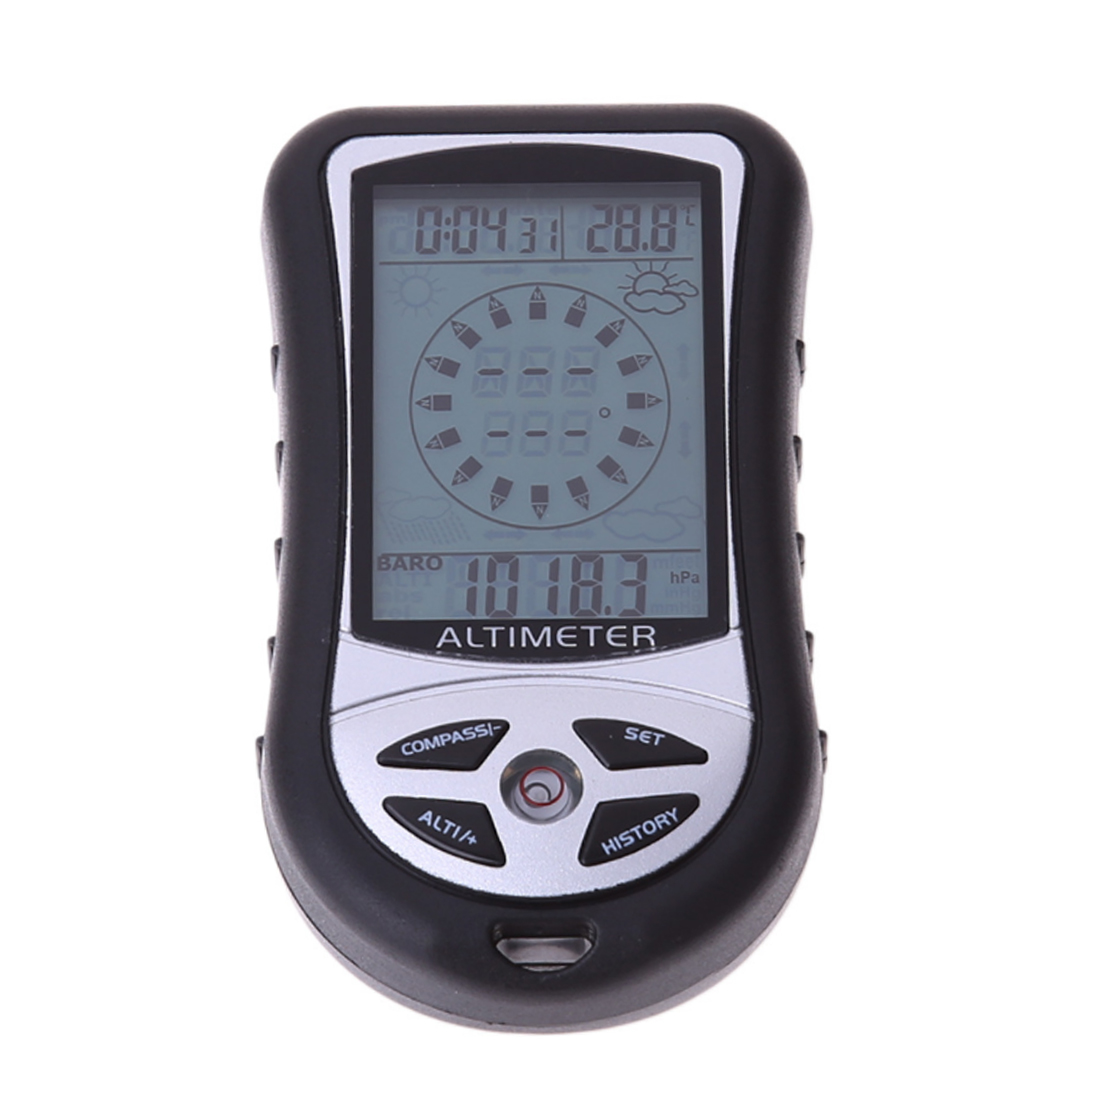 8 In 1 LCD Digital Altimeter Barometer Thermometer Weather Forecast History Clock Calendar Compass For Hiking Hunting